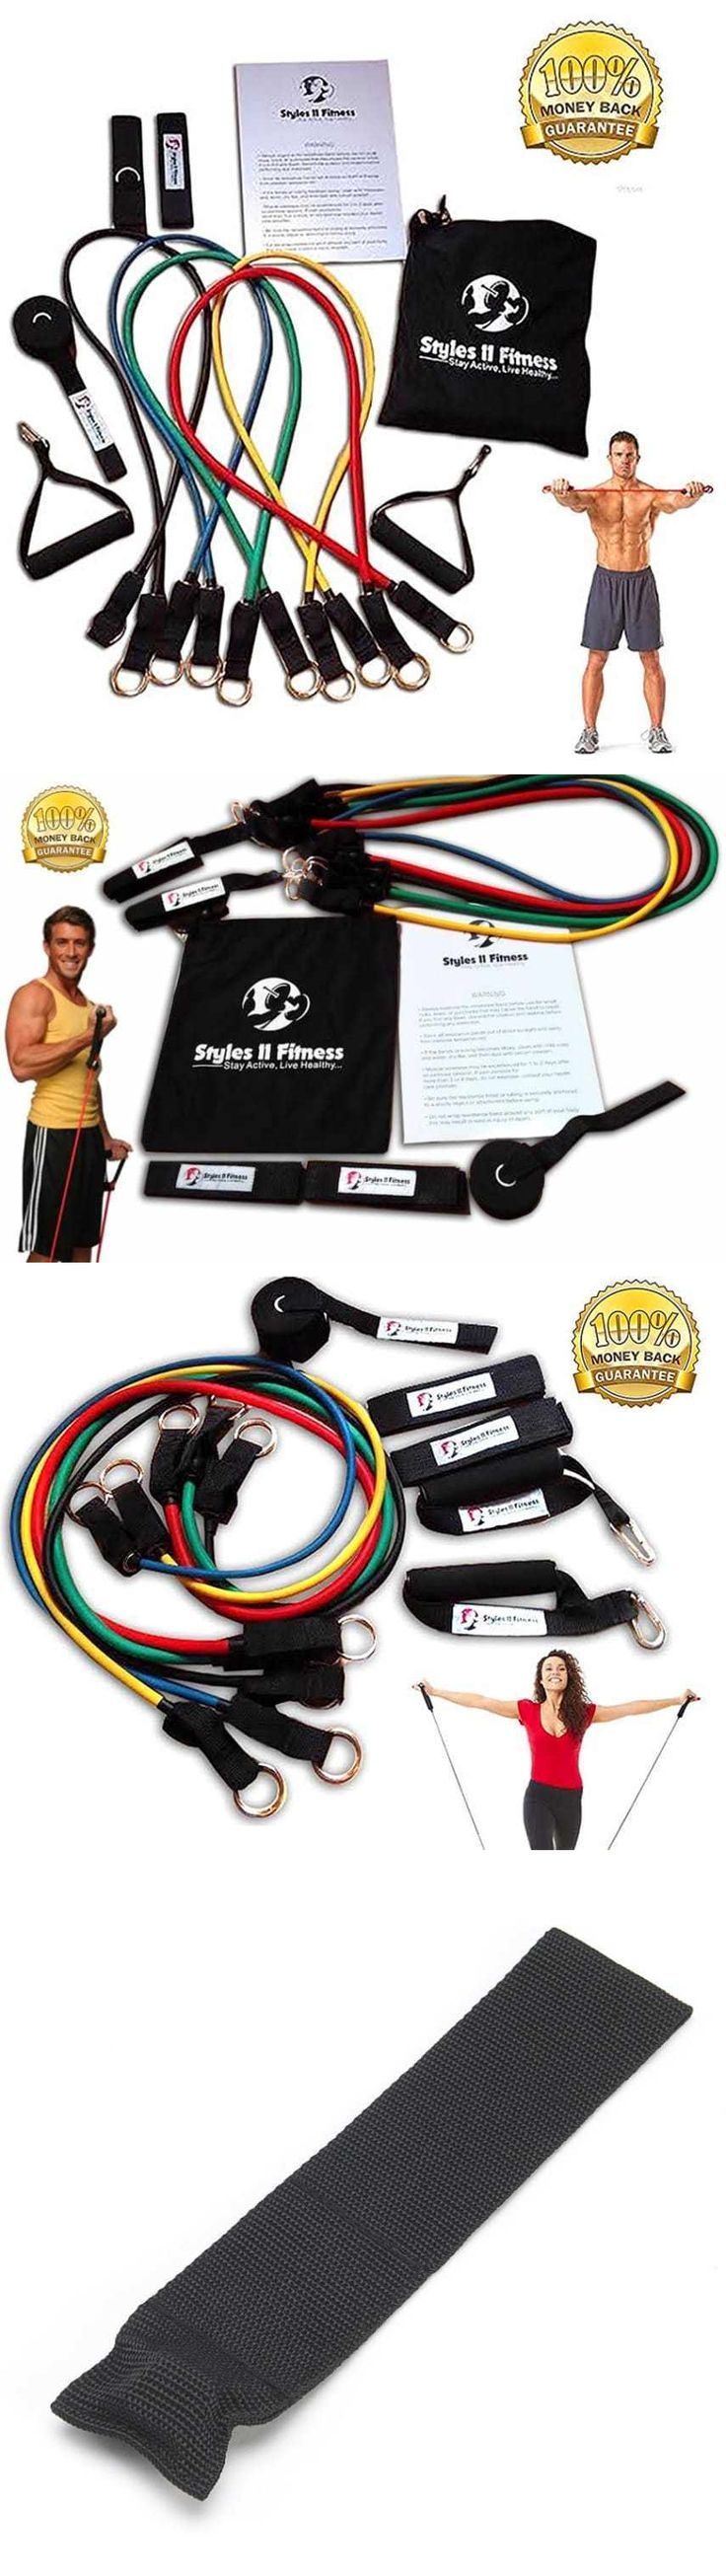 Resistance Trainers 79759: New Home Gym Fitness Resistance Tube Exercise Workout Elastic Stretch Band Set -> BUY IT NOW ONLY: $61.33 on eBay!